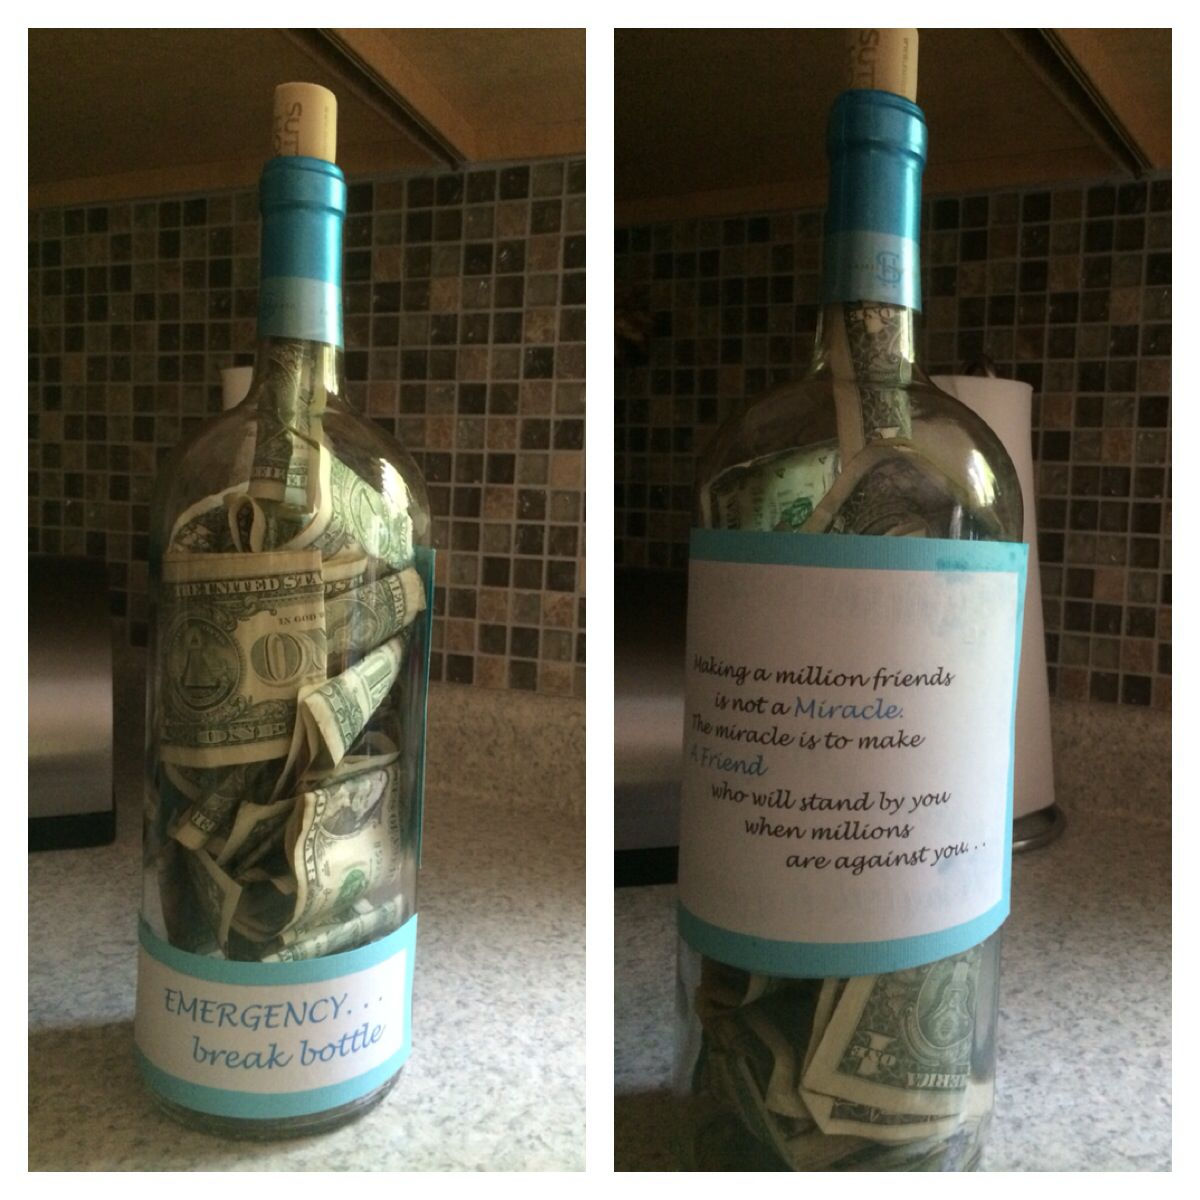 College Graduation gift idea for a best friend! & College Graduation gift idea for a best friend! | Gift ideas ...